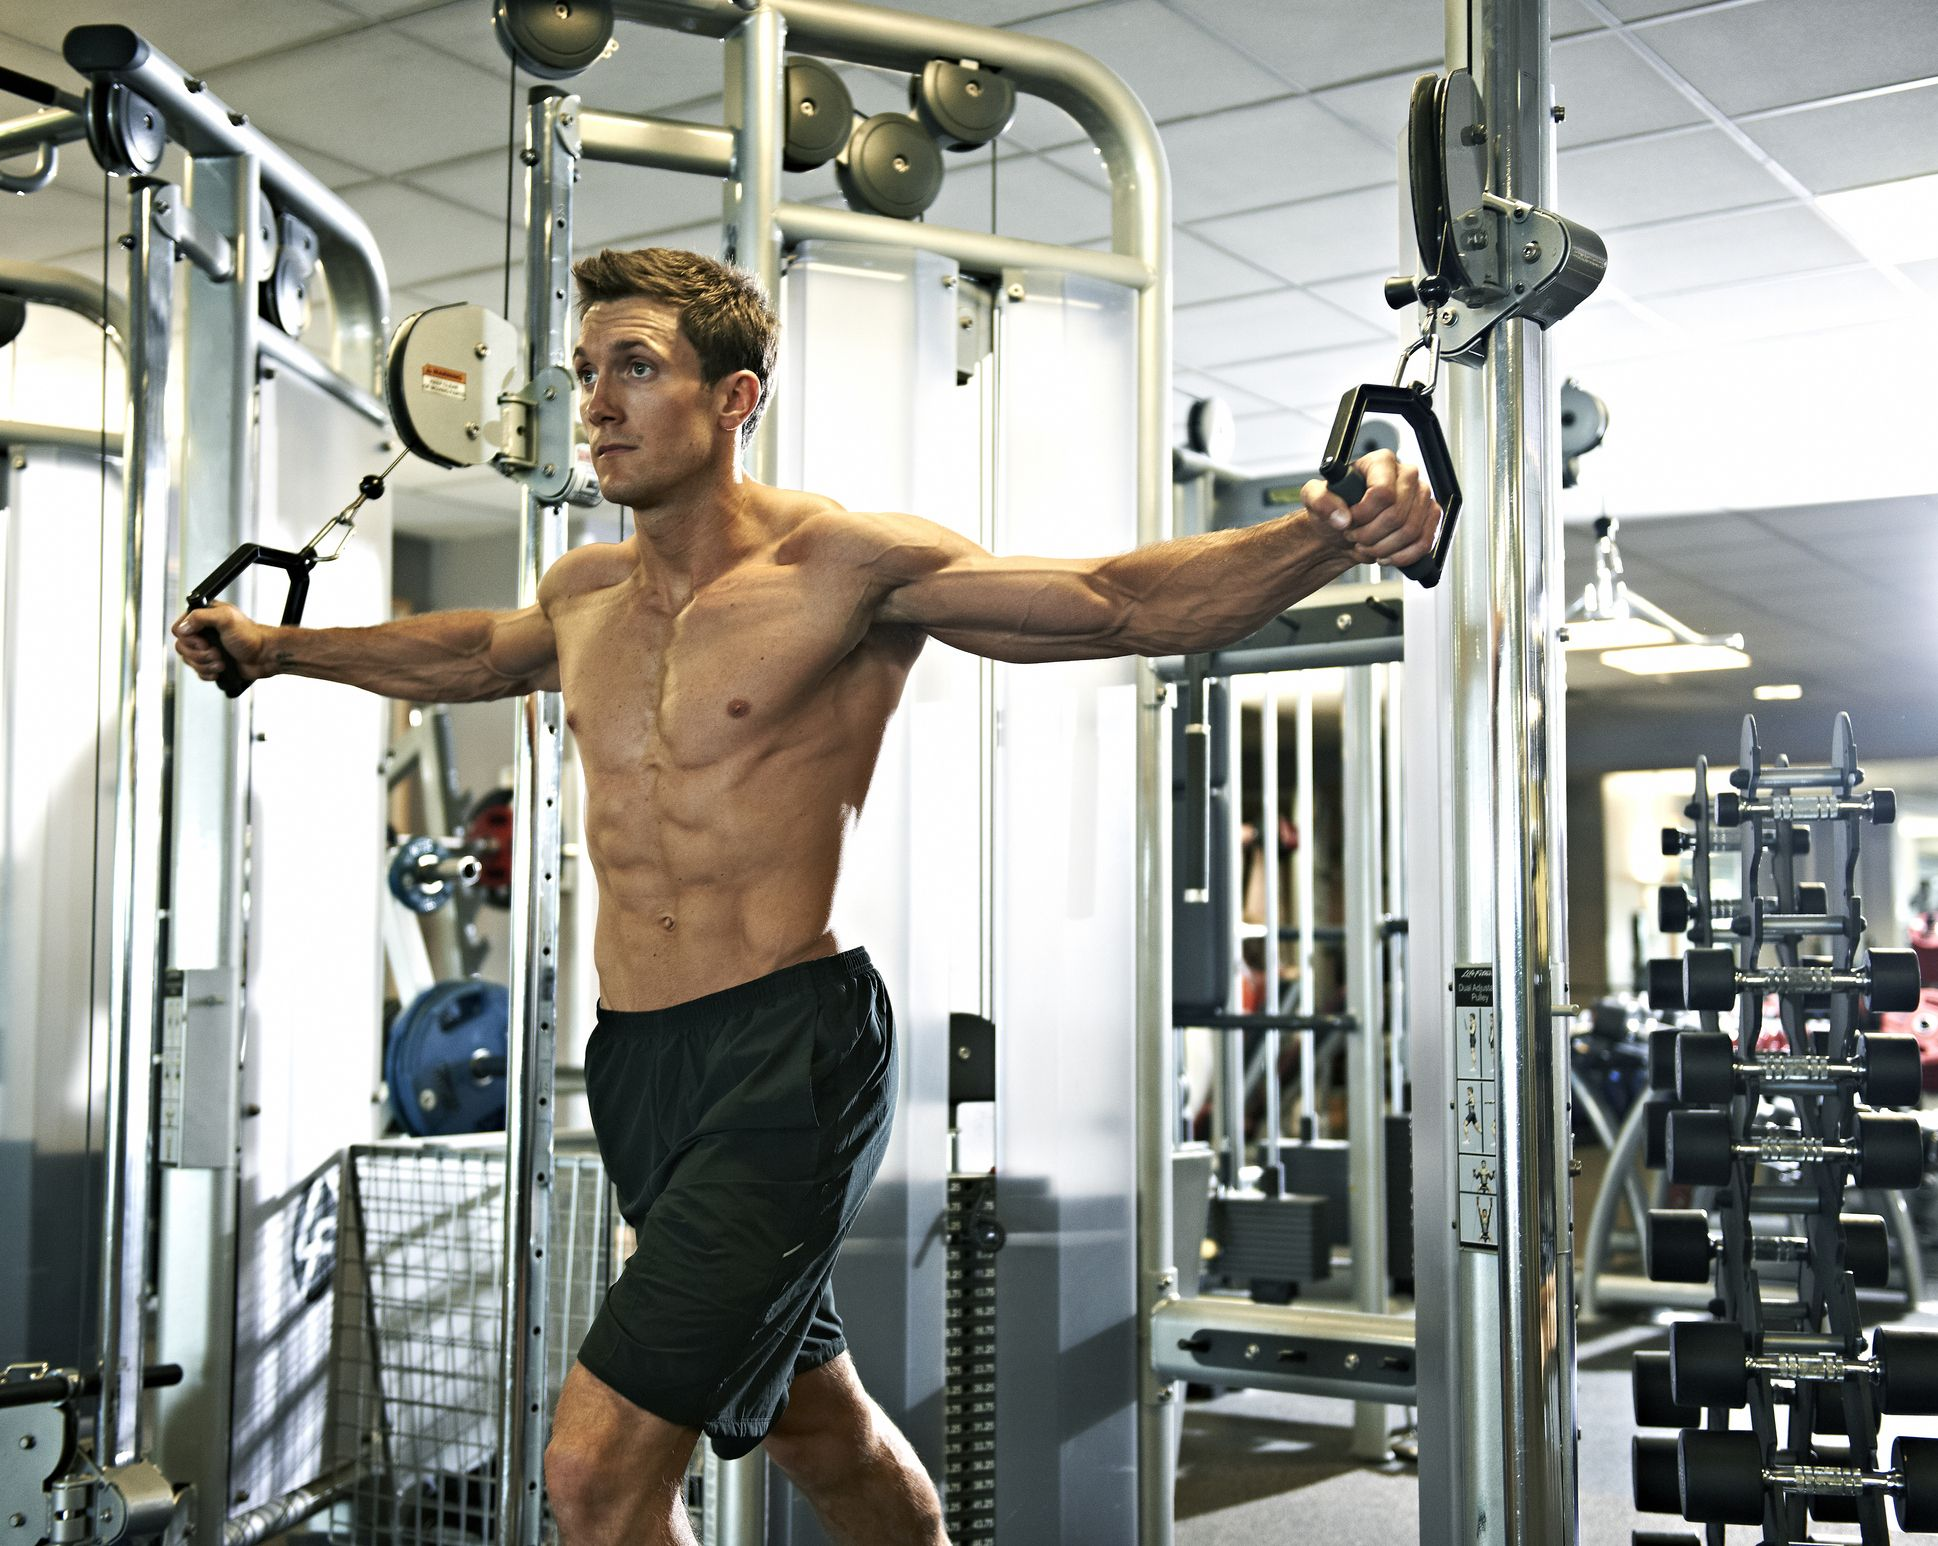 How to get bigger arms and chest fast at home